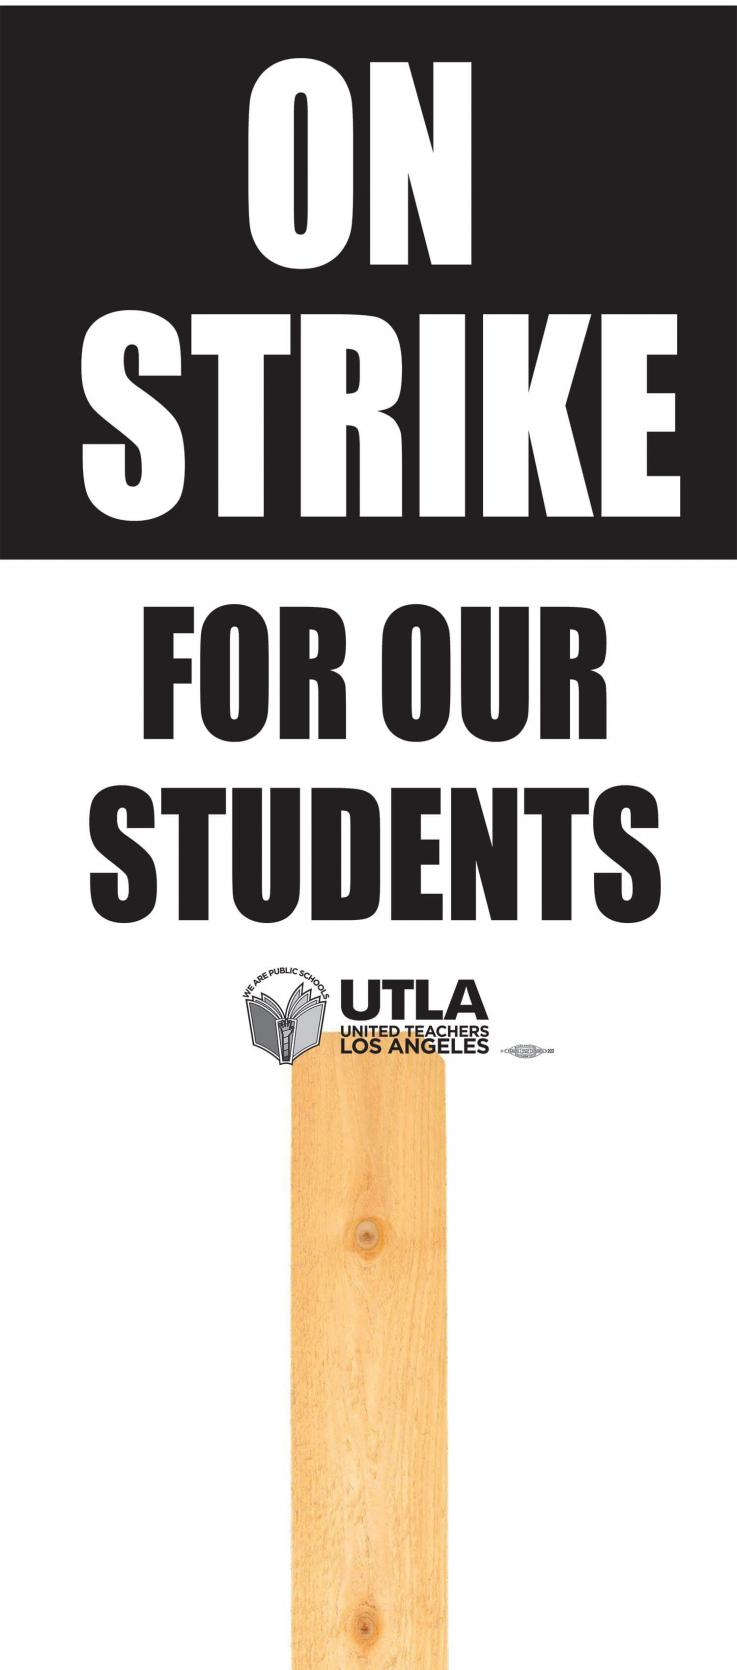 UTLA Black and white picket sign graphic